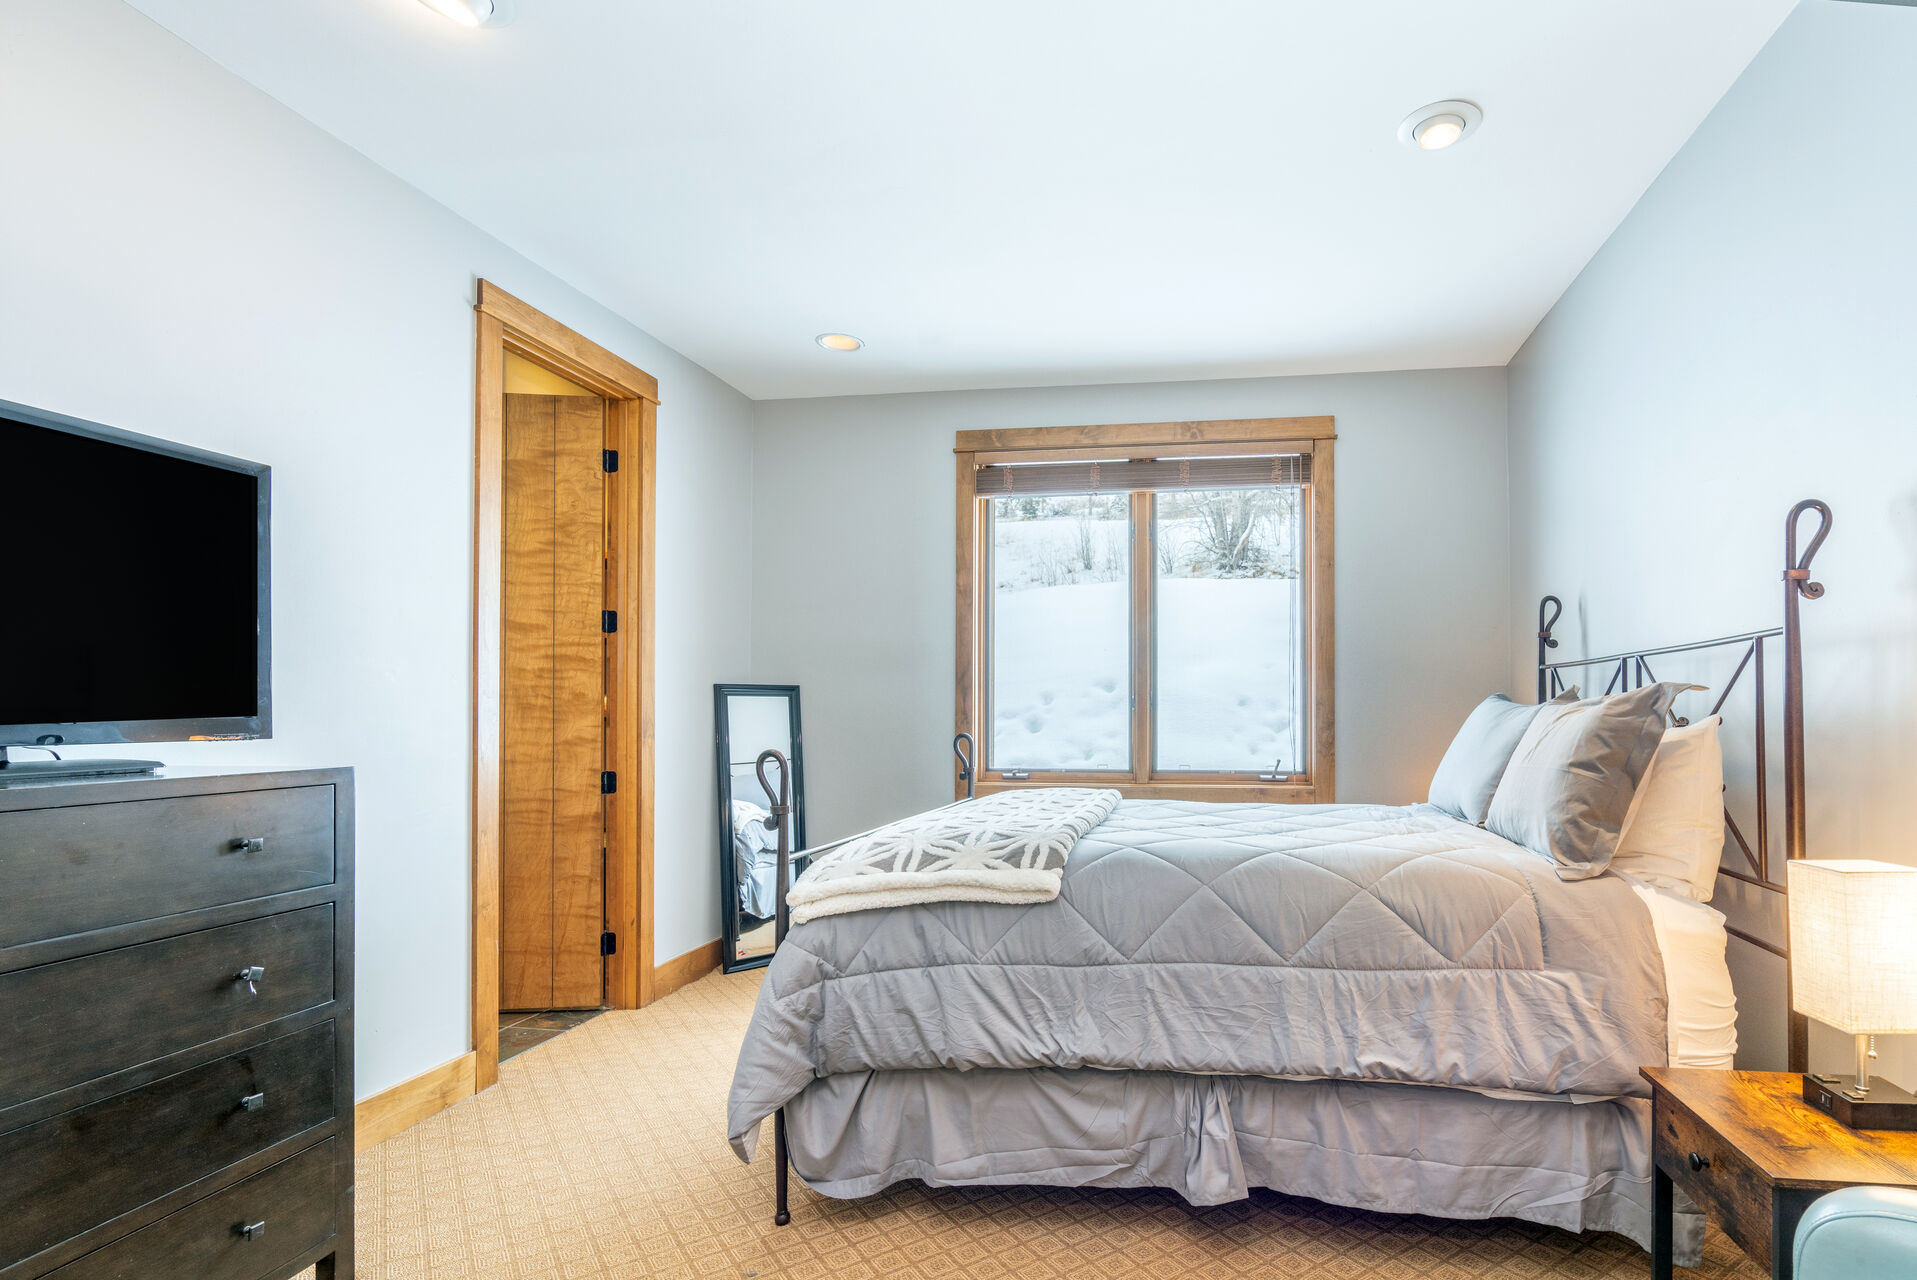 Bedroom with large bed with grey bedspread